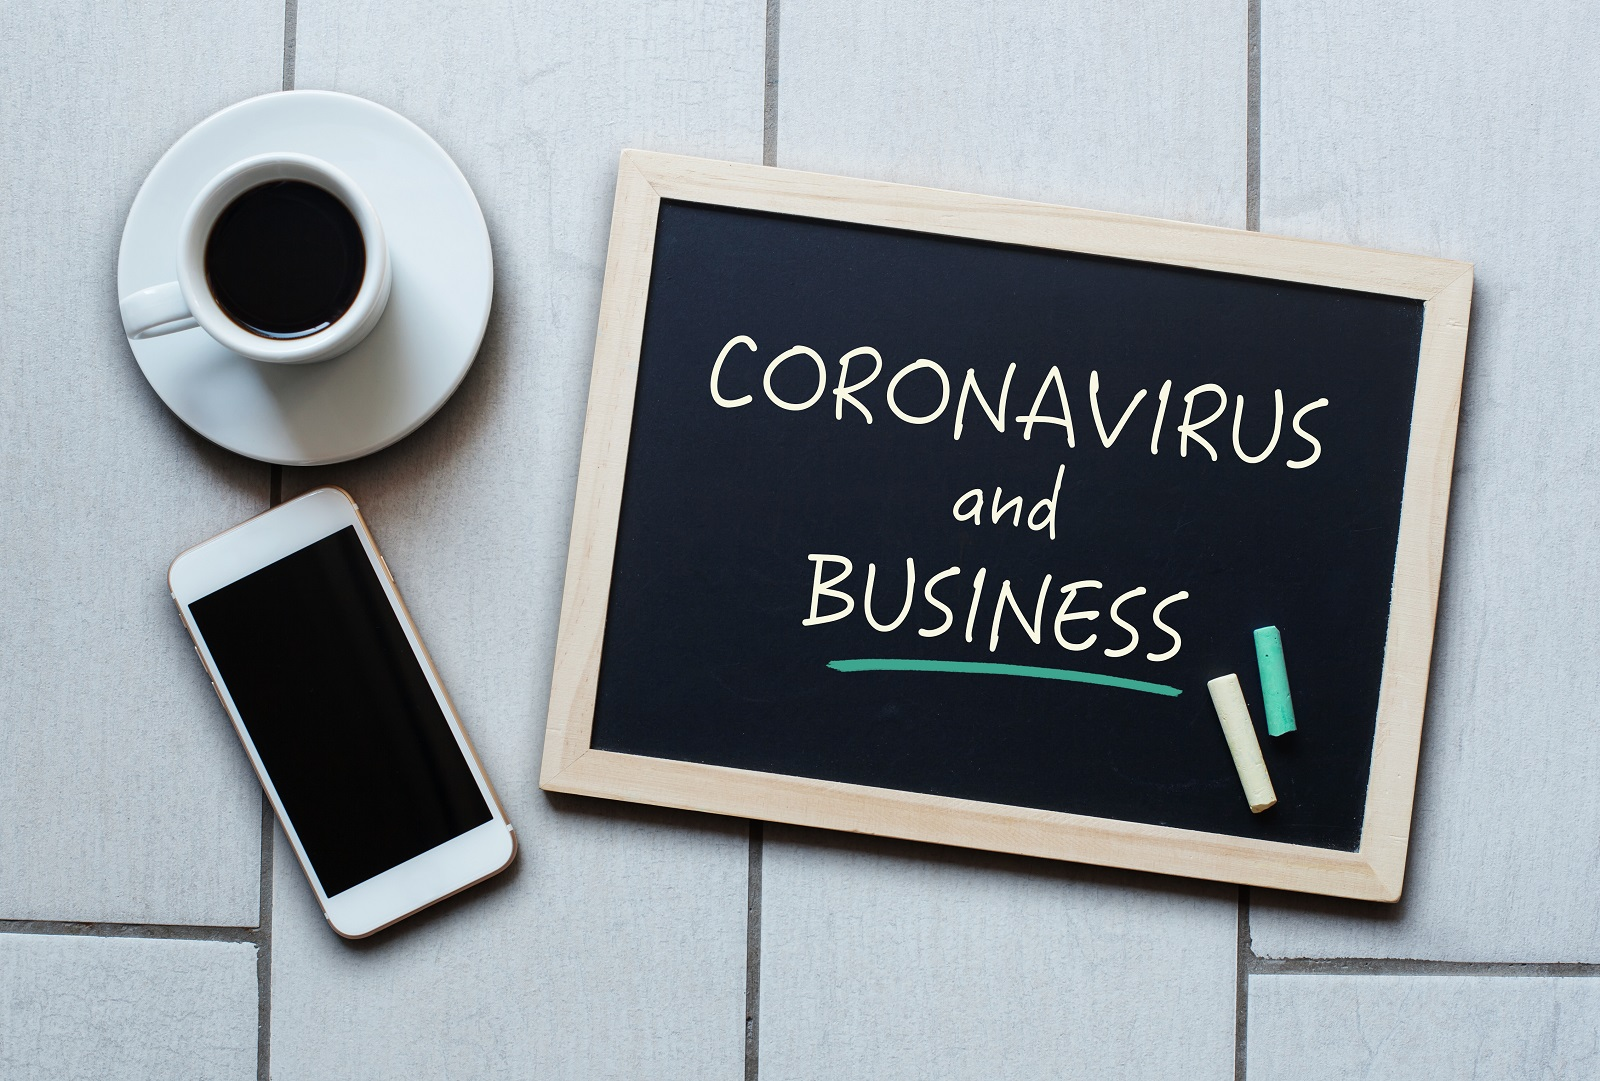 COVID and Business - written on chalkboard